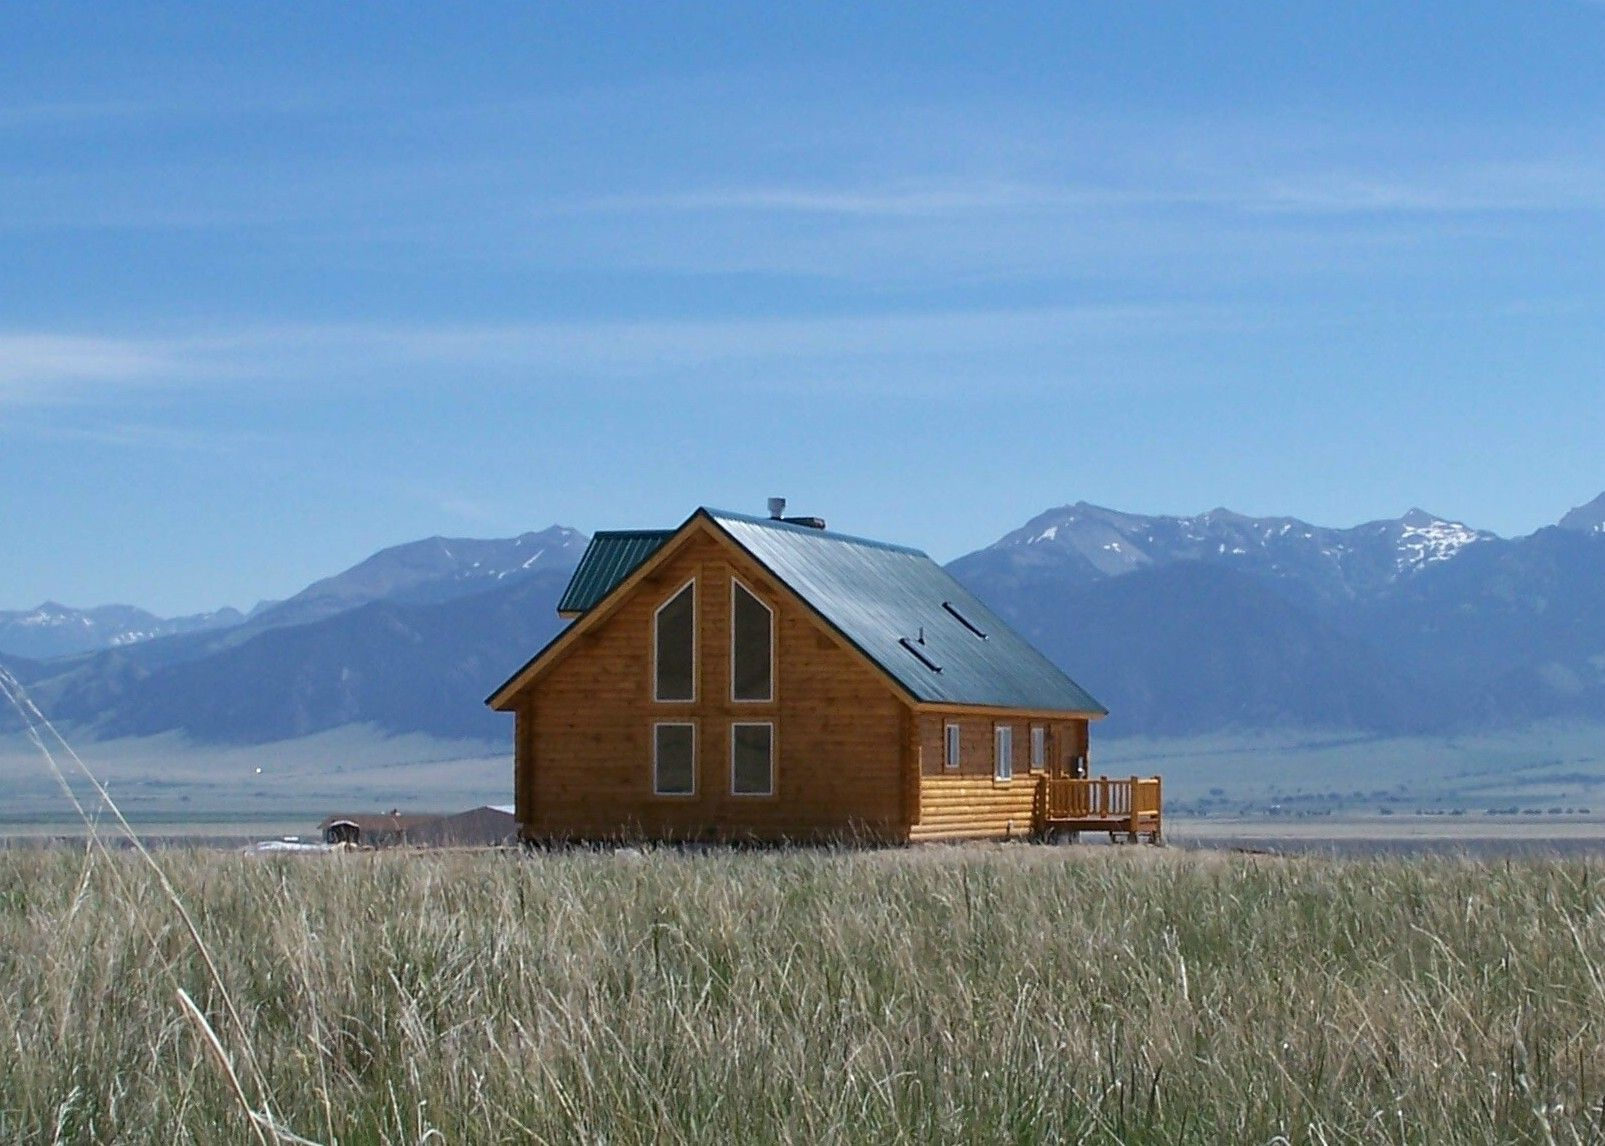 montana, cabin in the middle of nowhere | Houses I would like to own ...